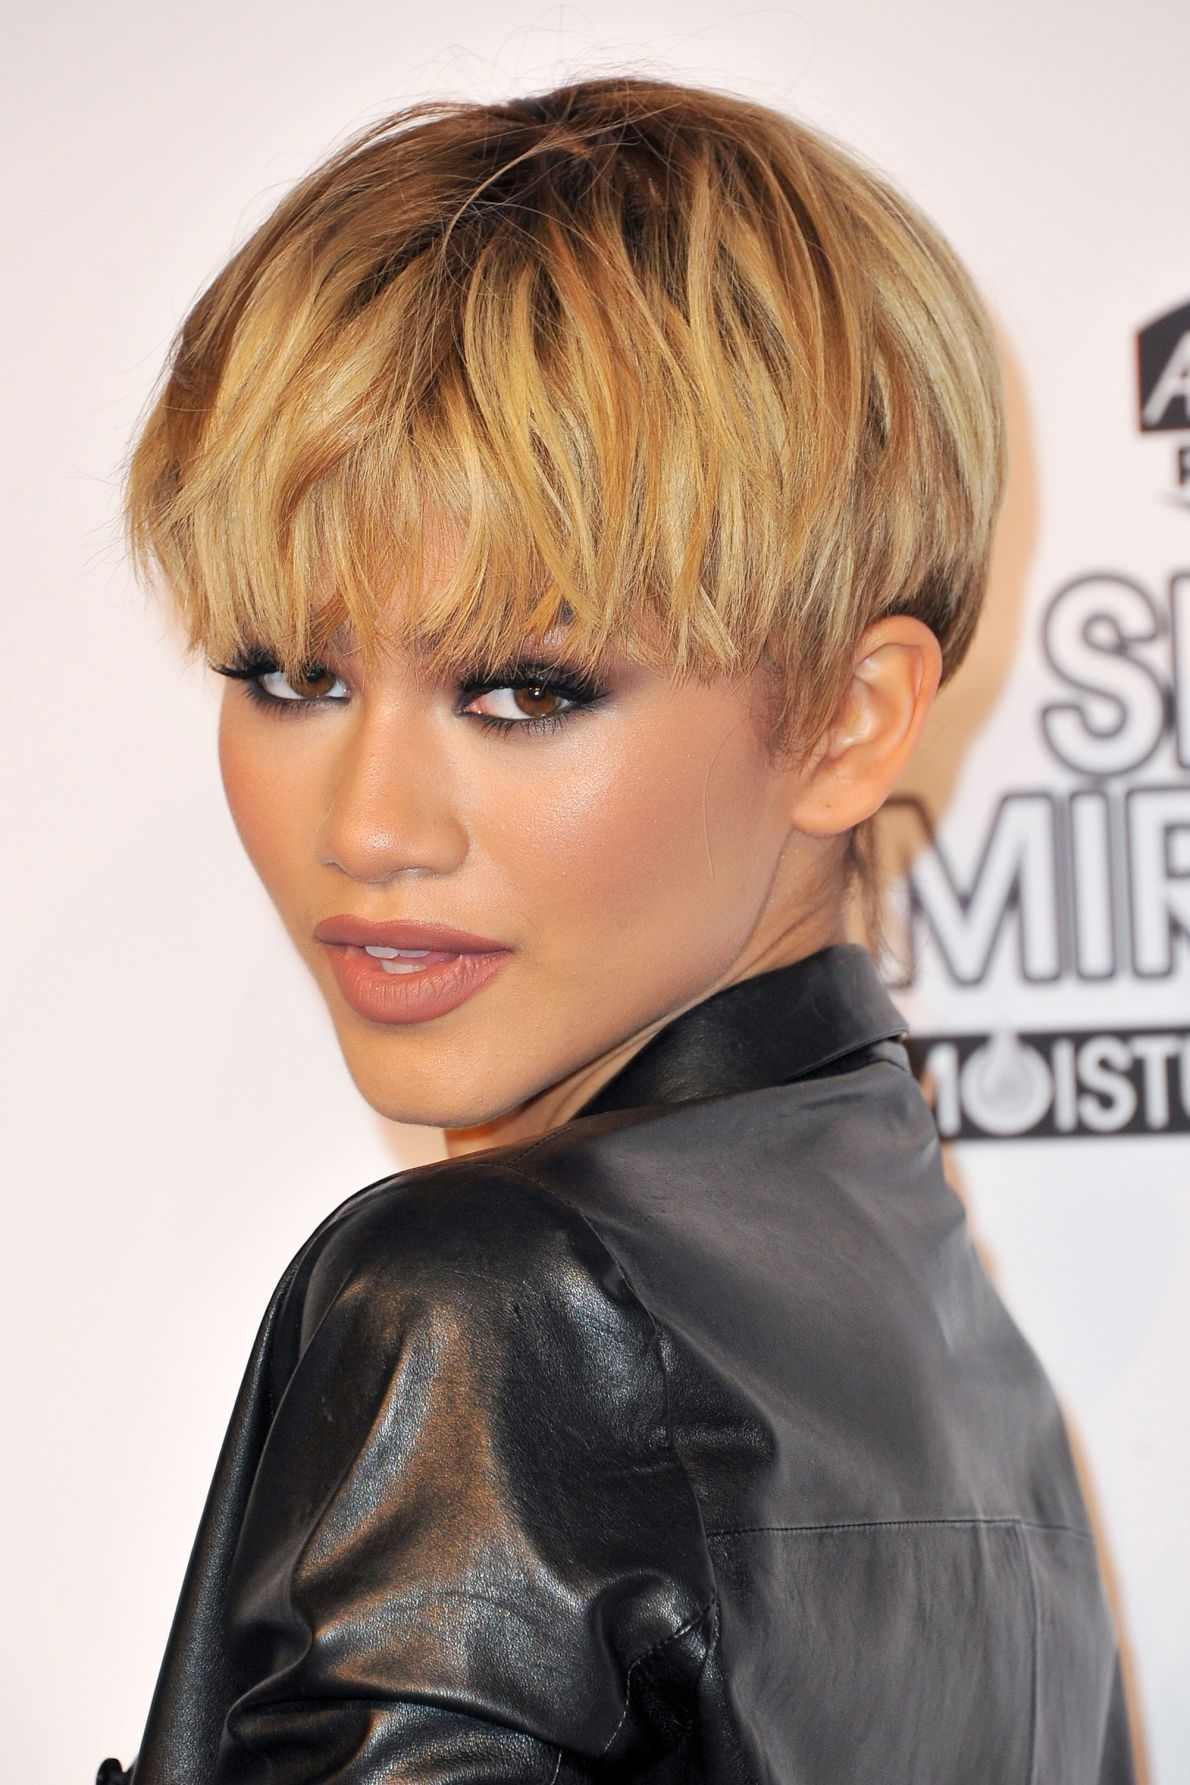 Image result for Pixie cut golden hair